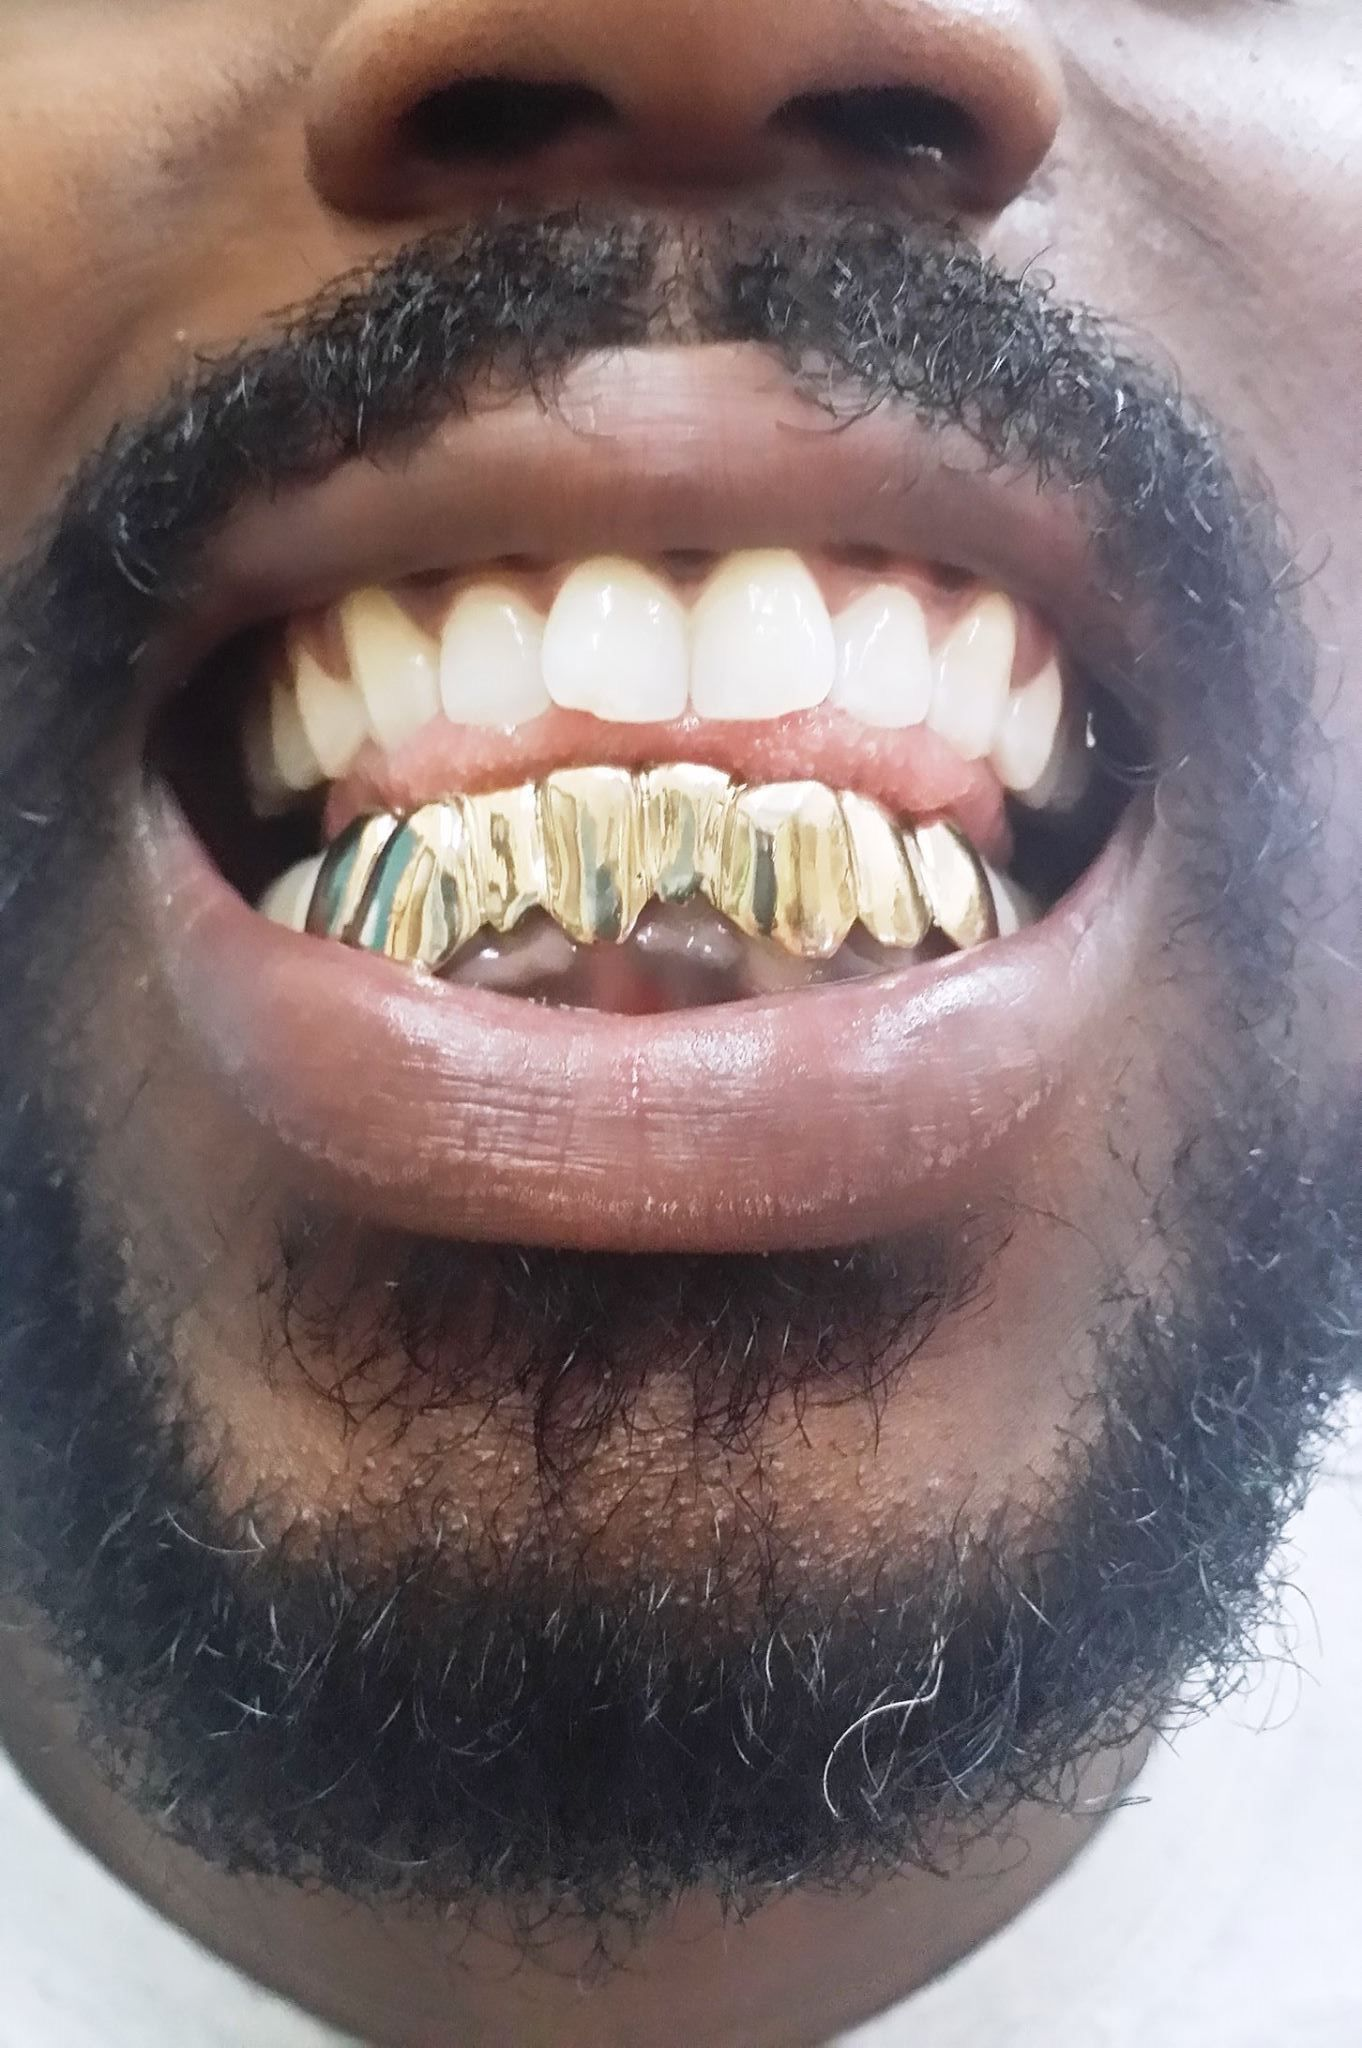 Real Mike Gold Teeth - Jewelry - 8315 NW 22nd Ave, Miami